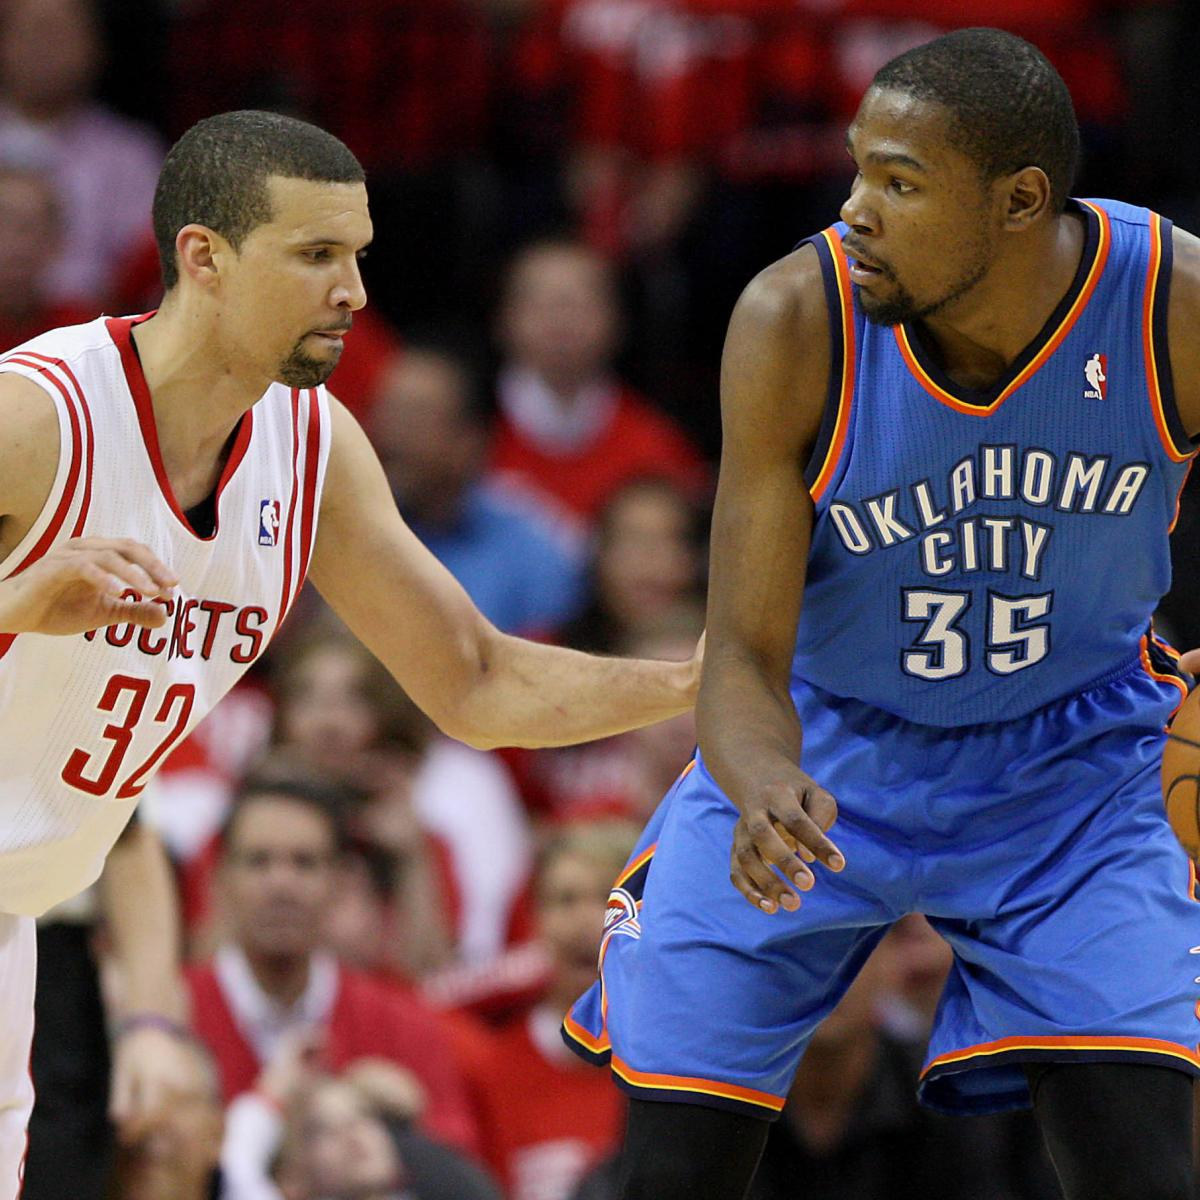 Houston Rockets Vs Okc: Houston Rockets Vs. OKC Thunder: Game 6 Postgame Grades